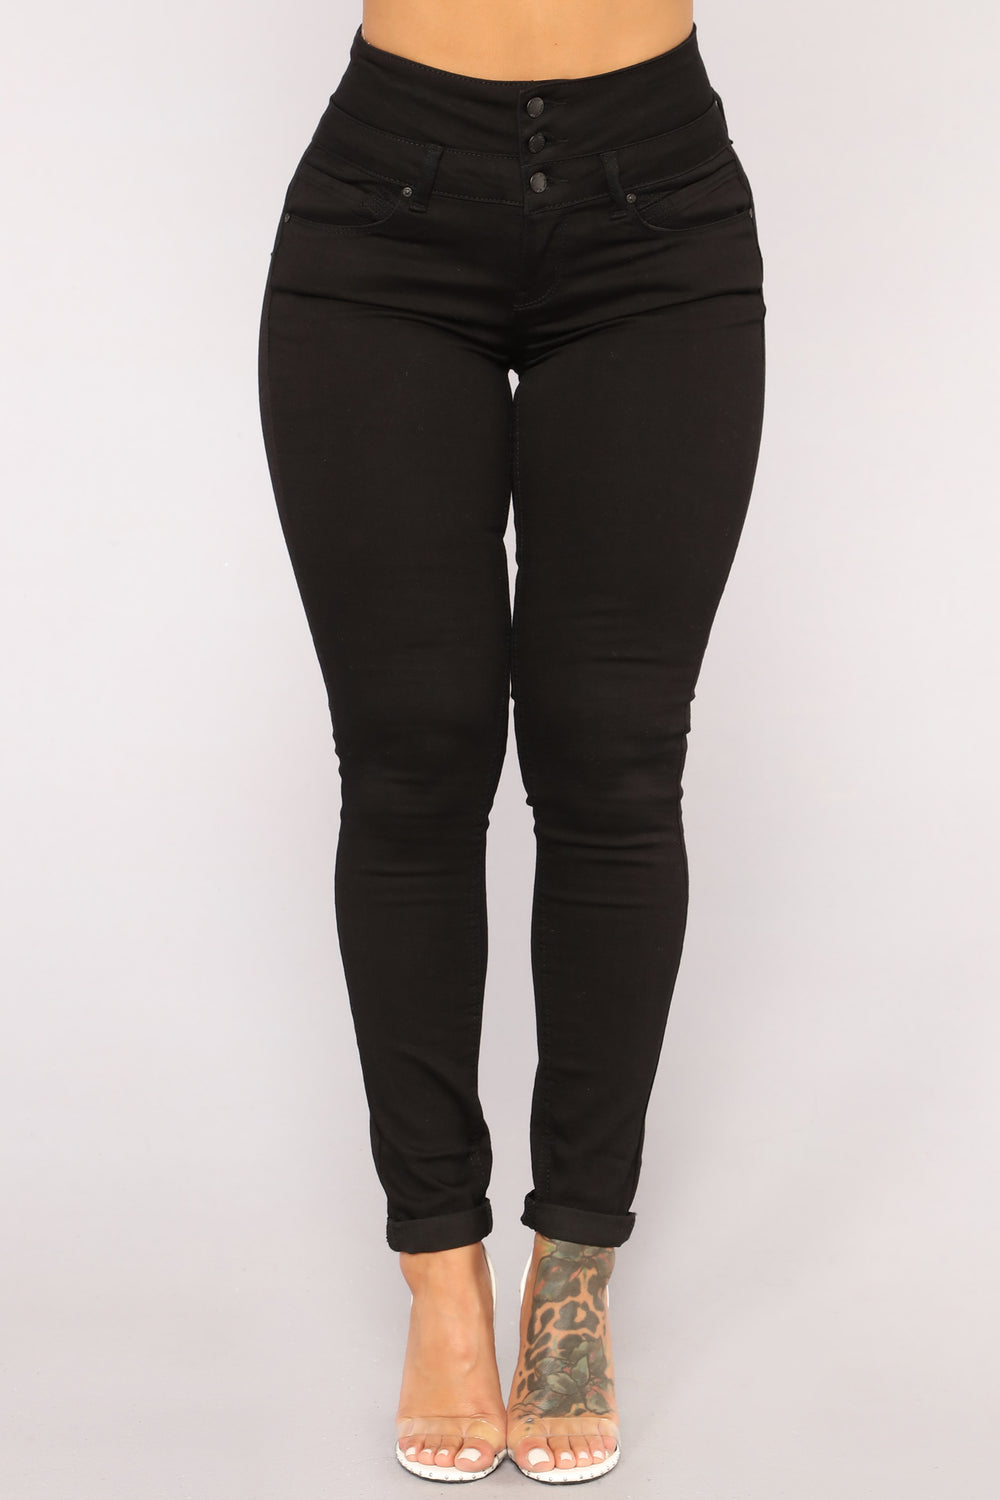 Detention Booty Lifting Jeans - Black